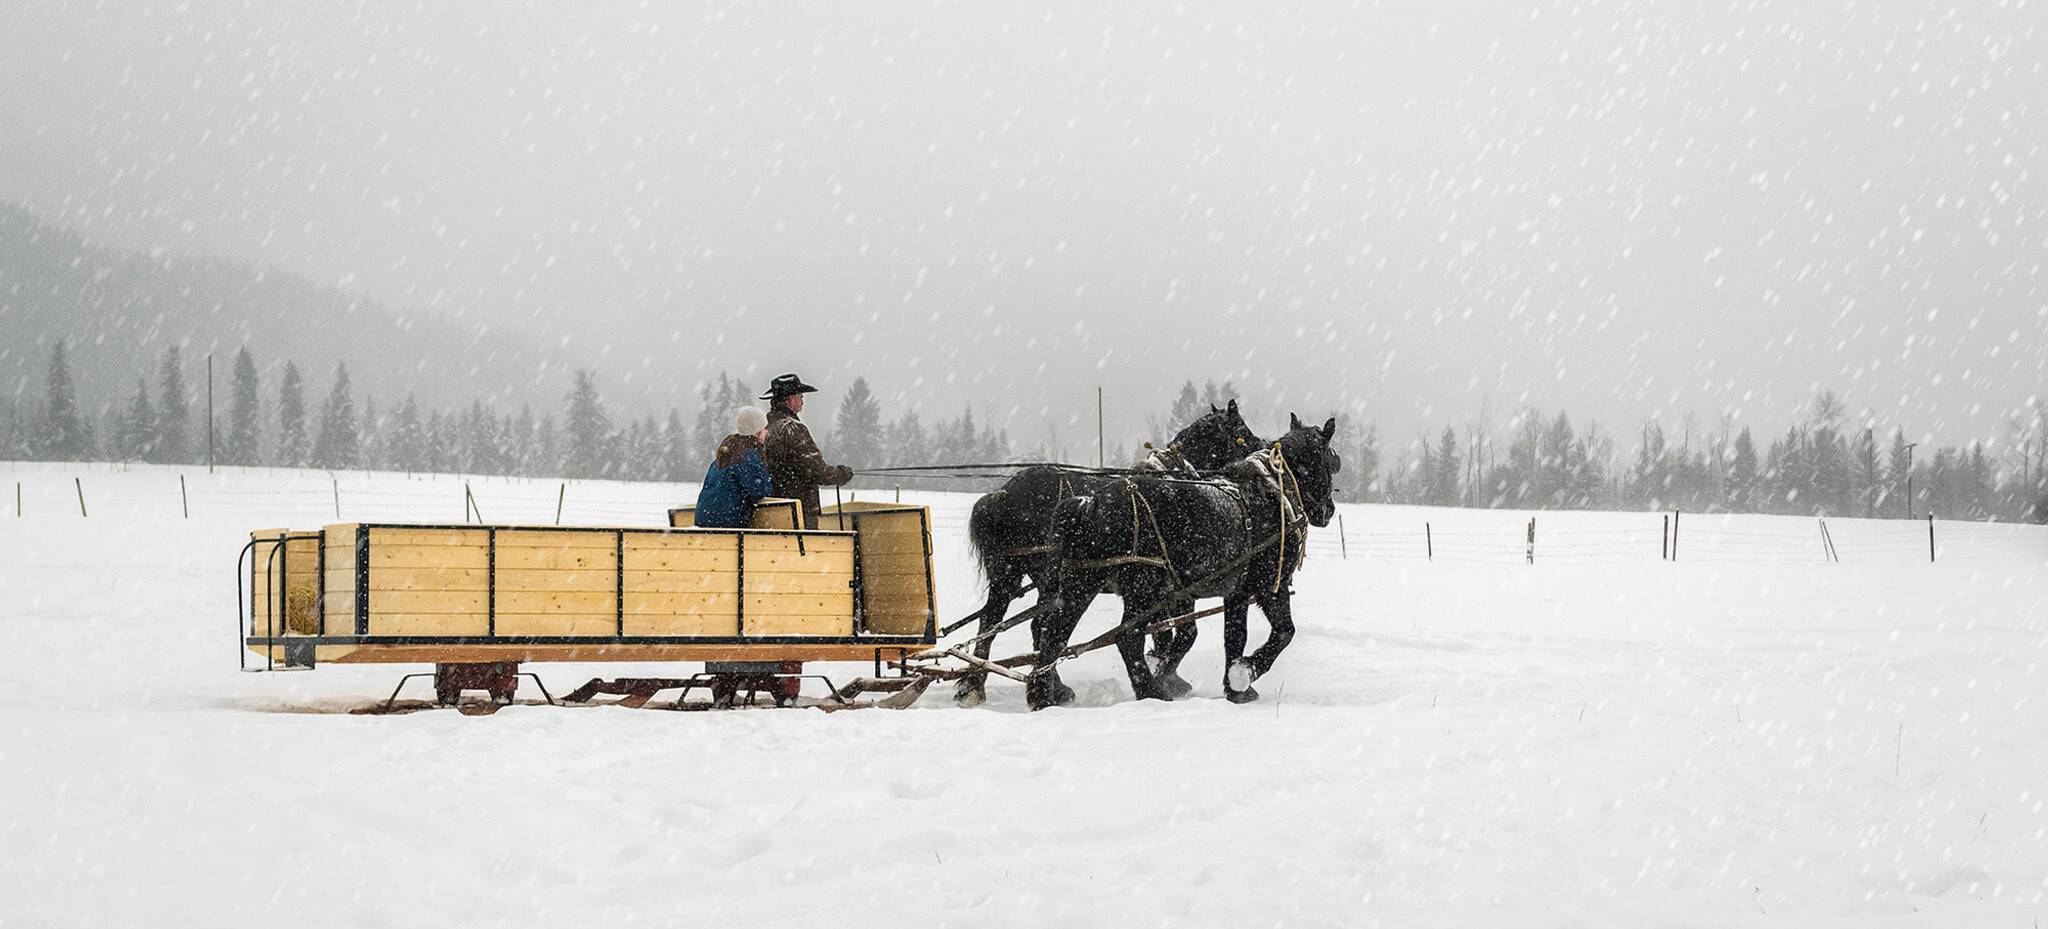 Chu Chua sleigh ride near Barriere, BC